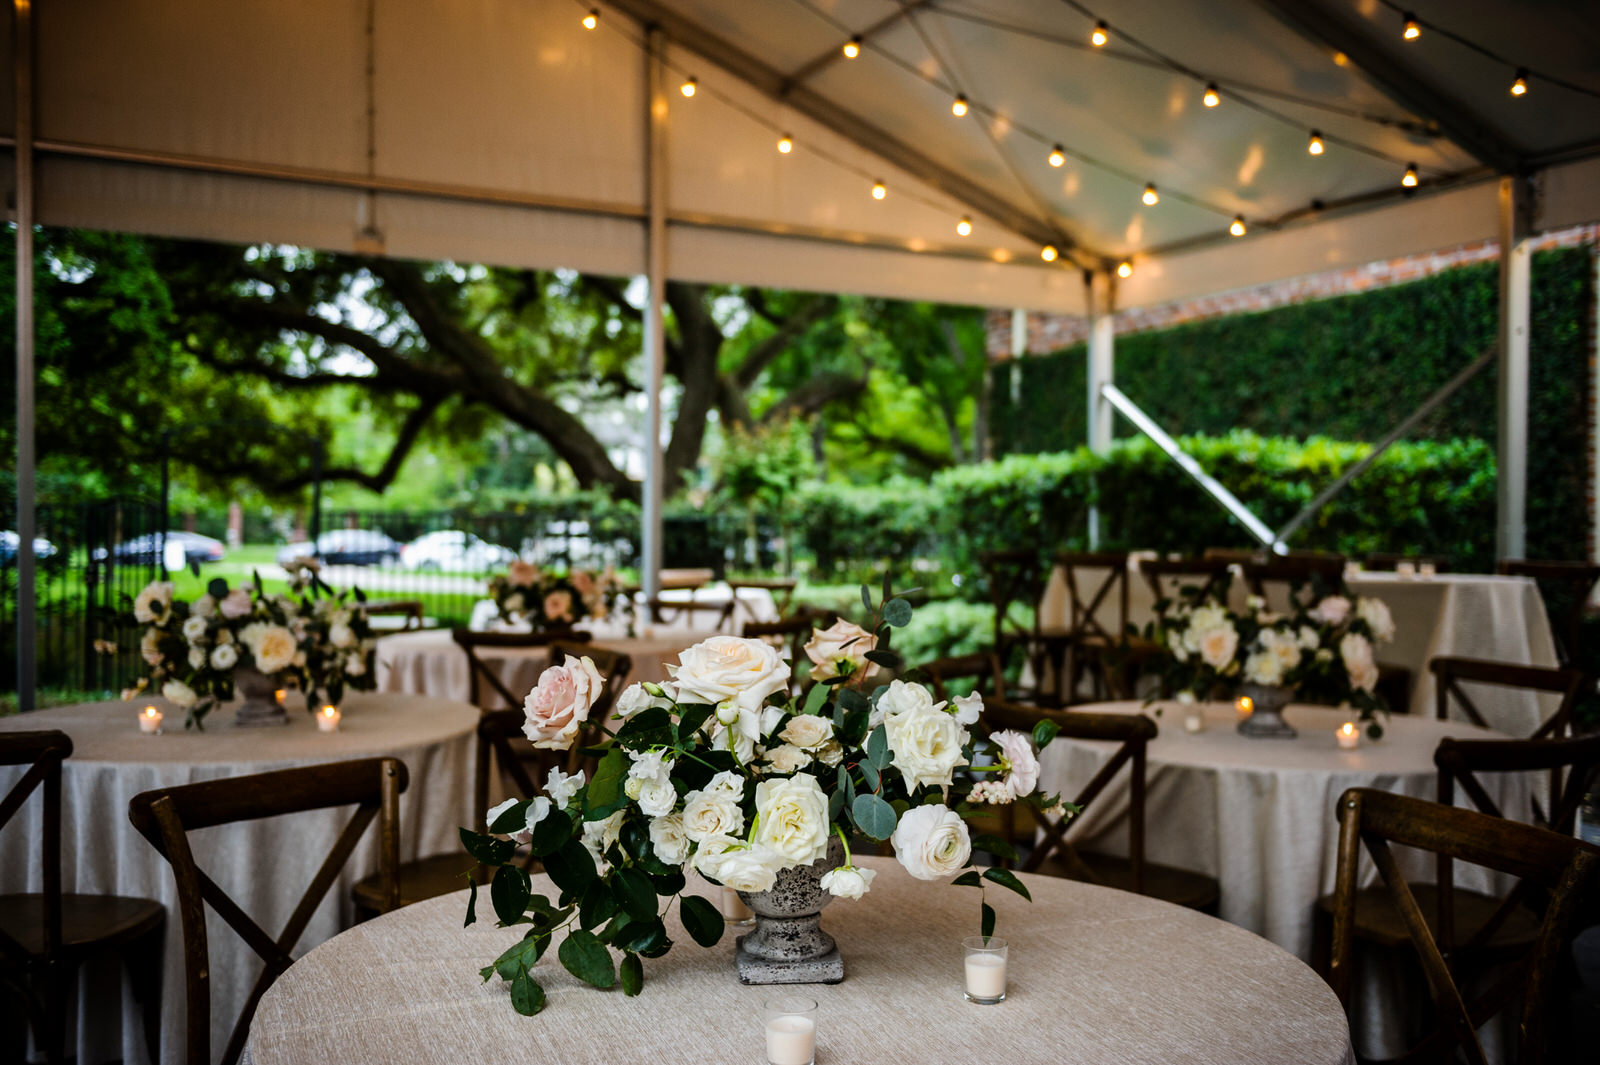 Garden style centerpiece with all white and touches of blush flowers. Houston, Texas. Maxit Flower Design,  Alyssa Meeks  ,  Chris Bailey Photography